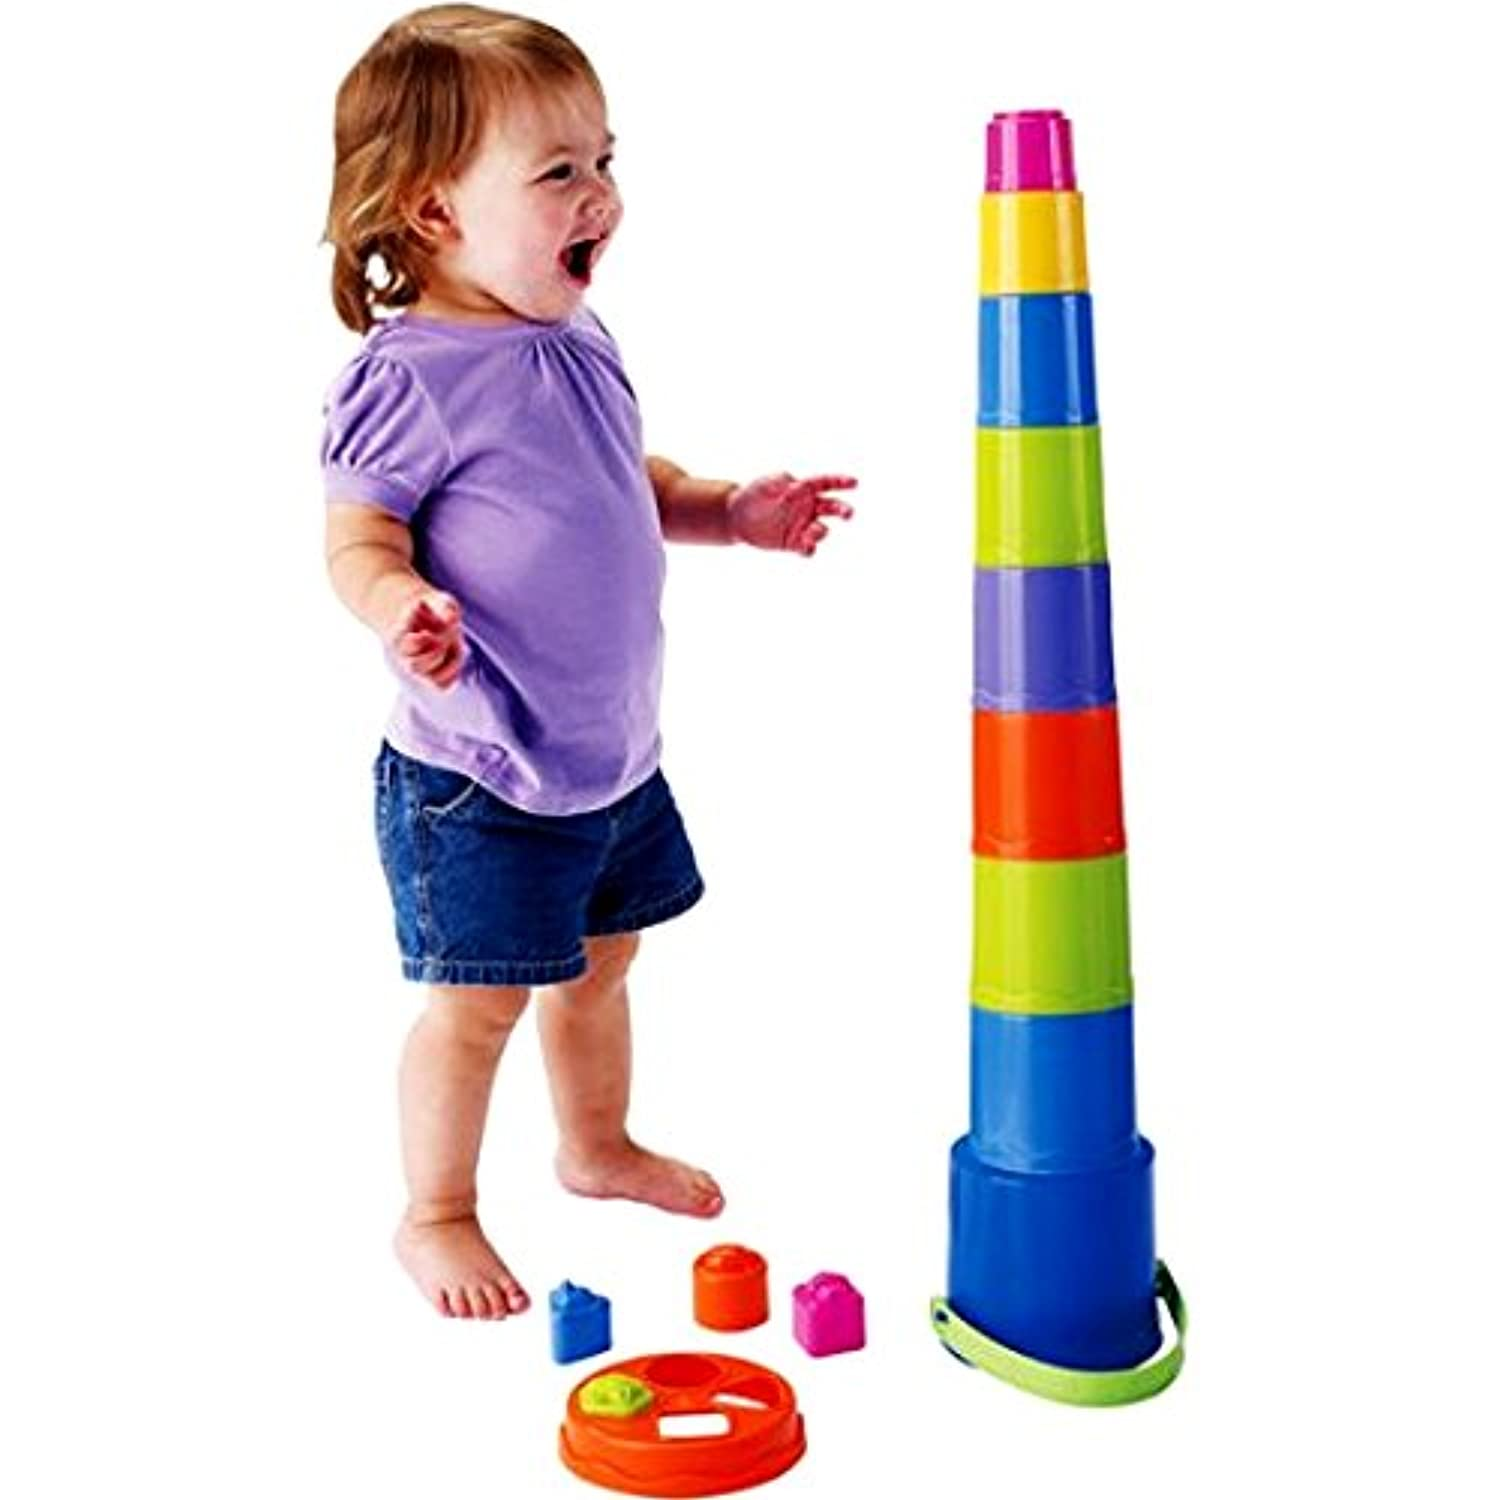 Stack and Pourバケット、Large Nesting and Stackingバケットfor Kids and Toddlersおもちゃ、スタックNネストと構築バケット& e-book